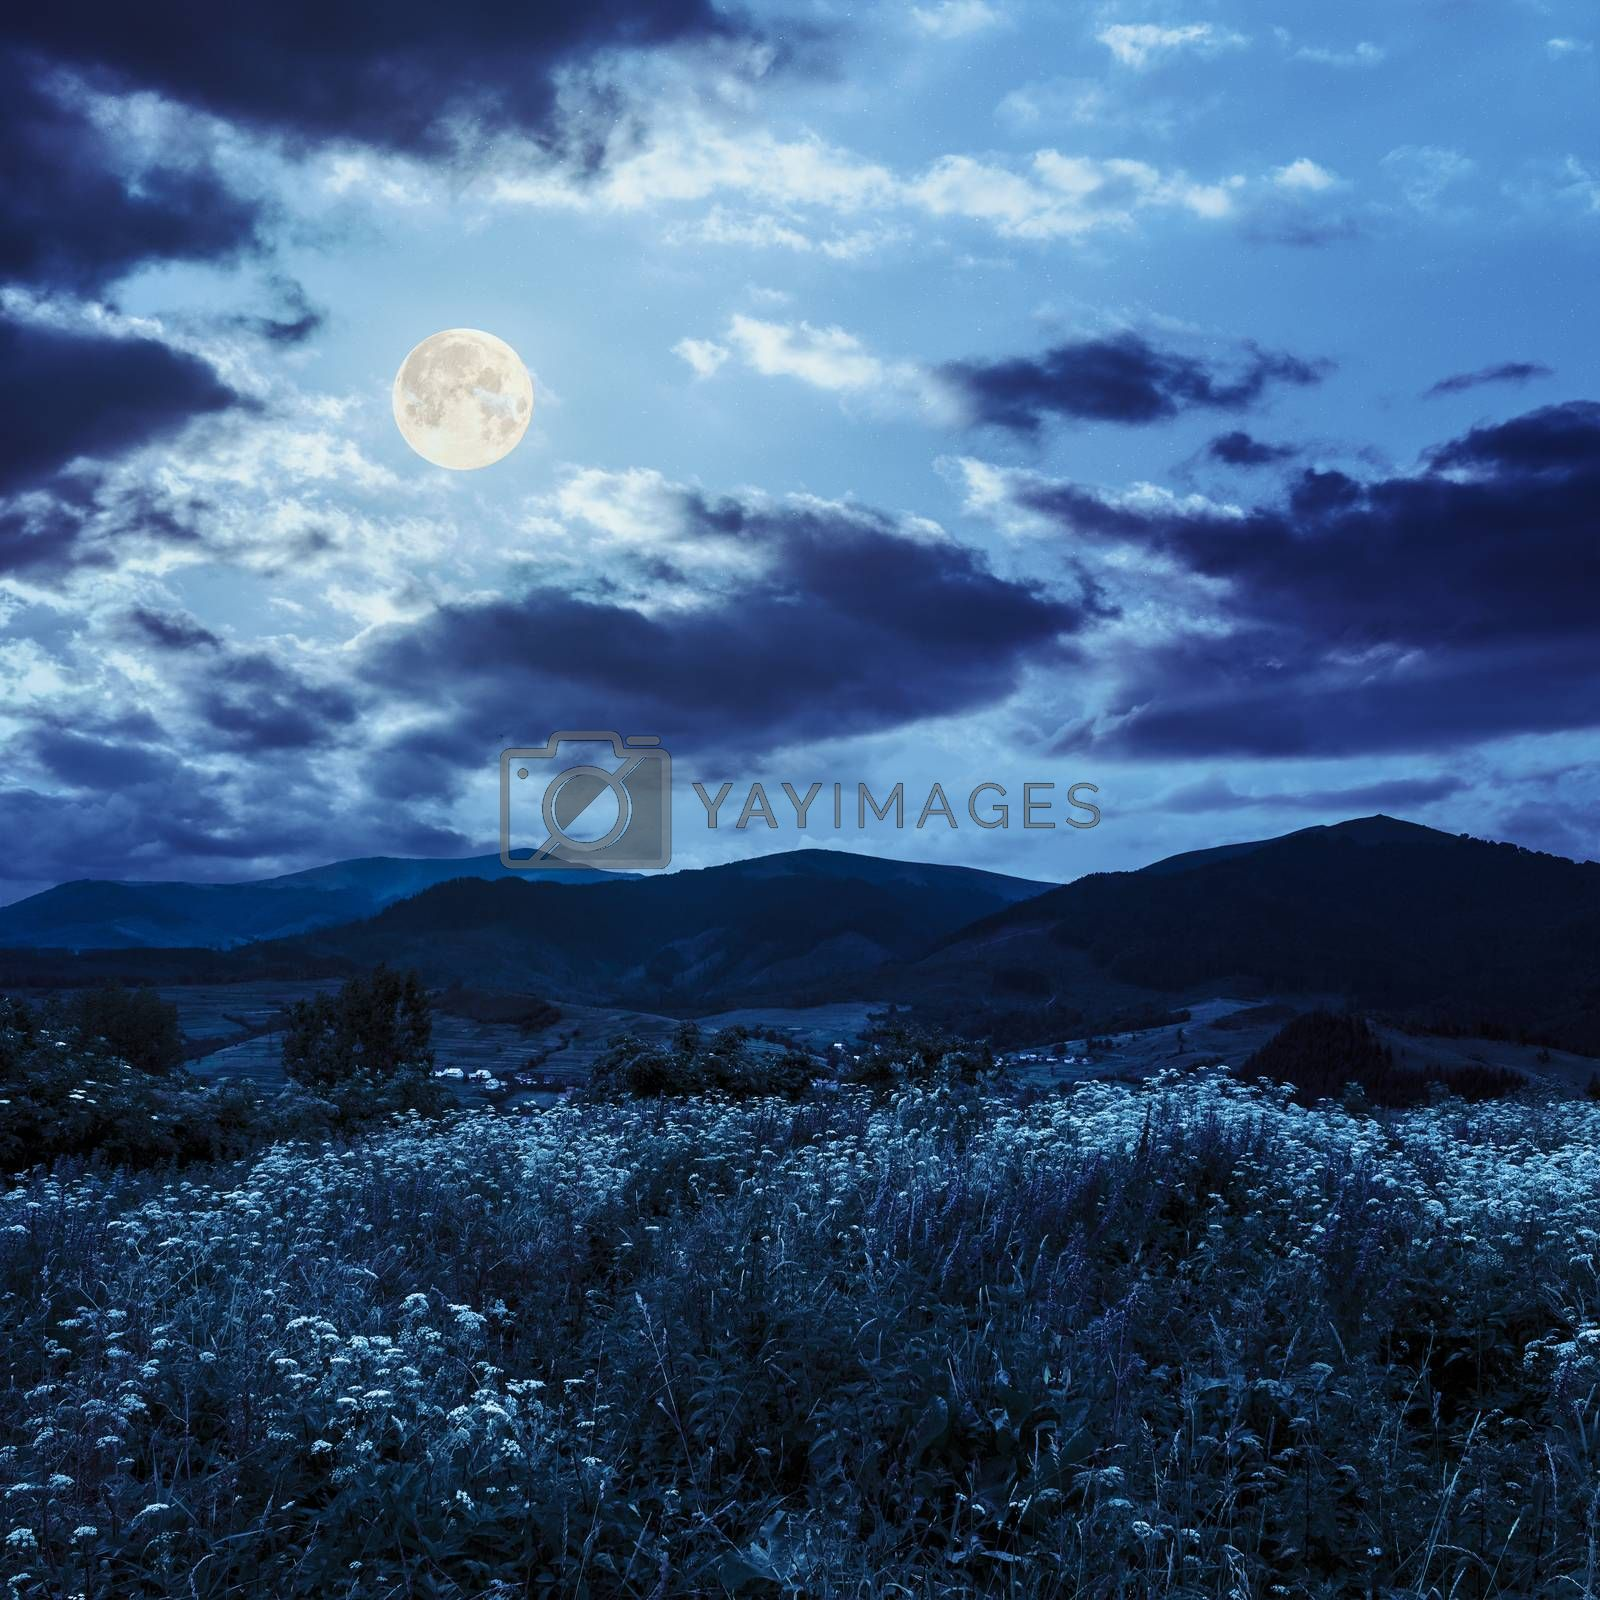 high wild plants in  mountains in moon light by Pellinni